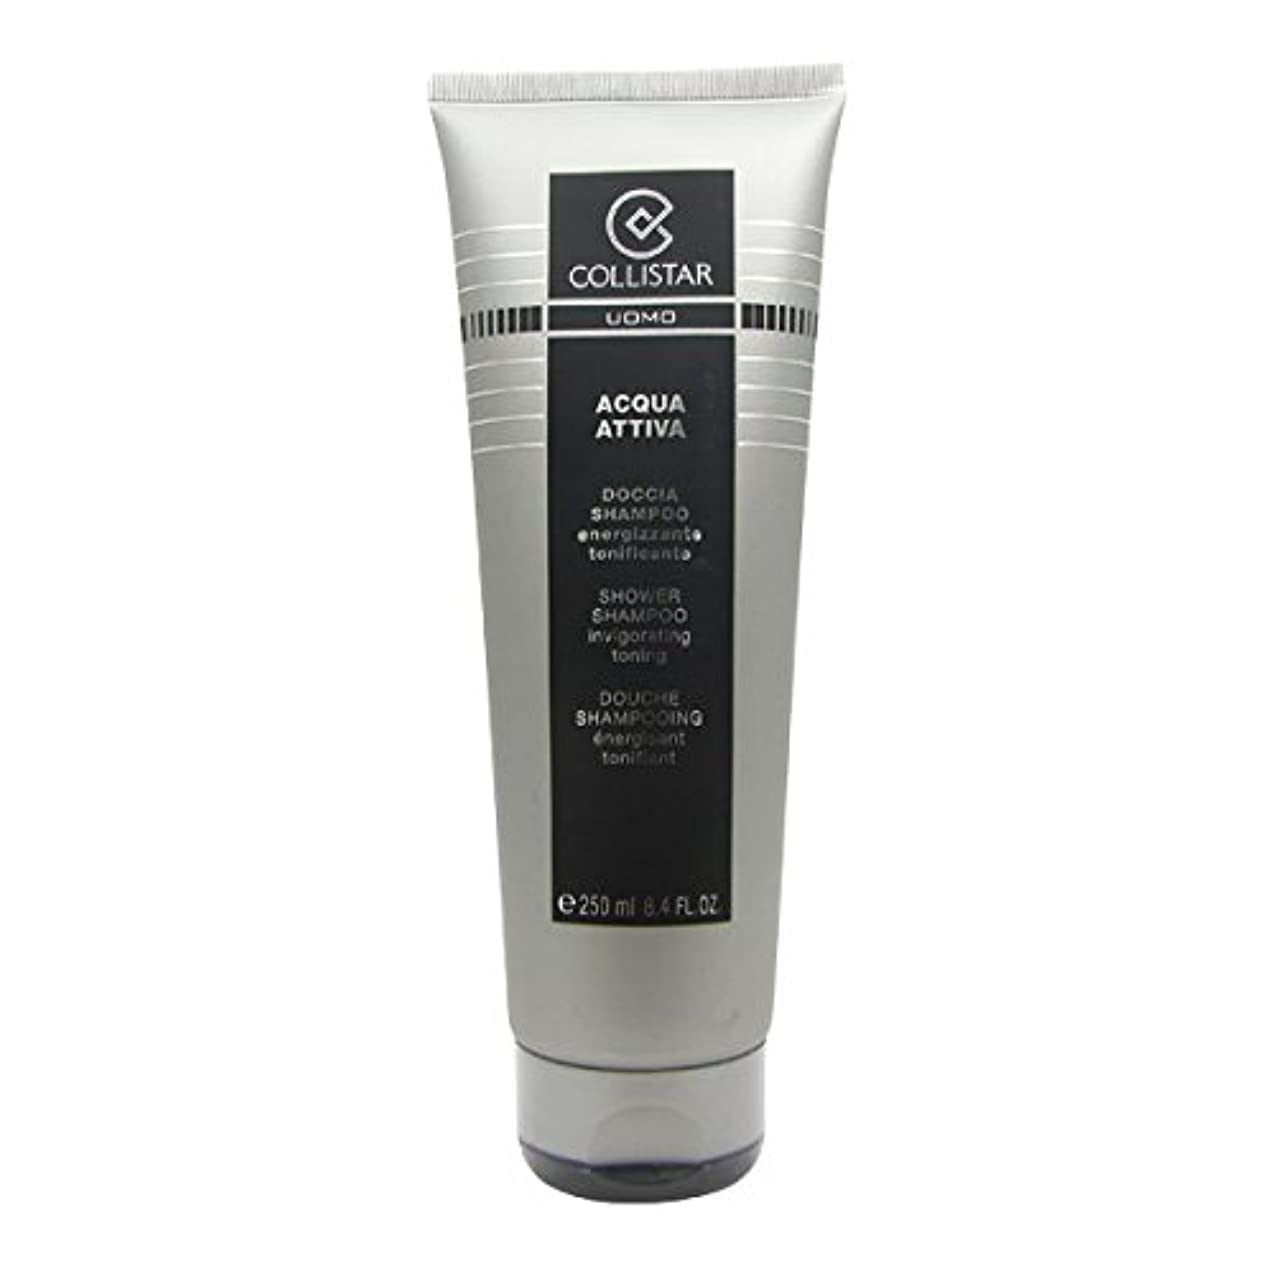 梨野球アクセサリーCollistar Men Acqua Attiva Shower Shampoo 250ml [並行輸入品]